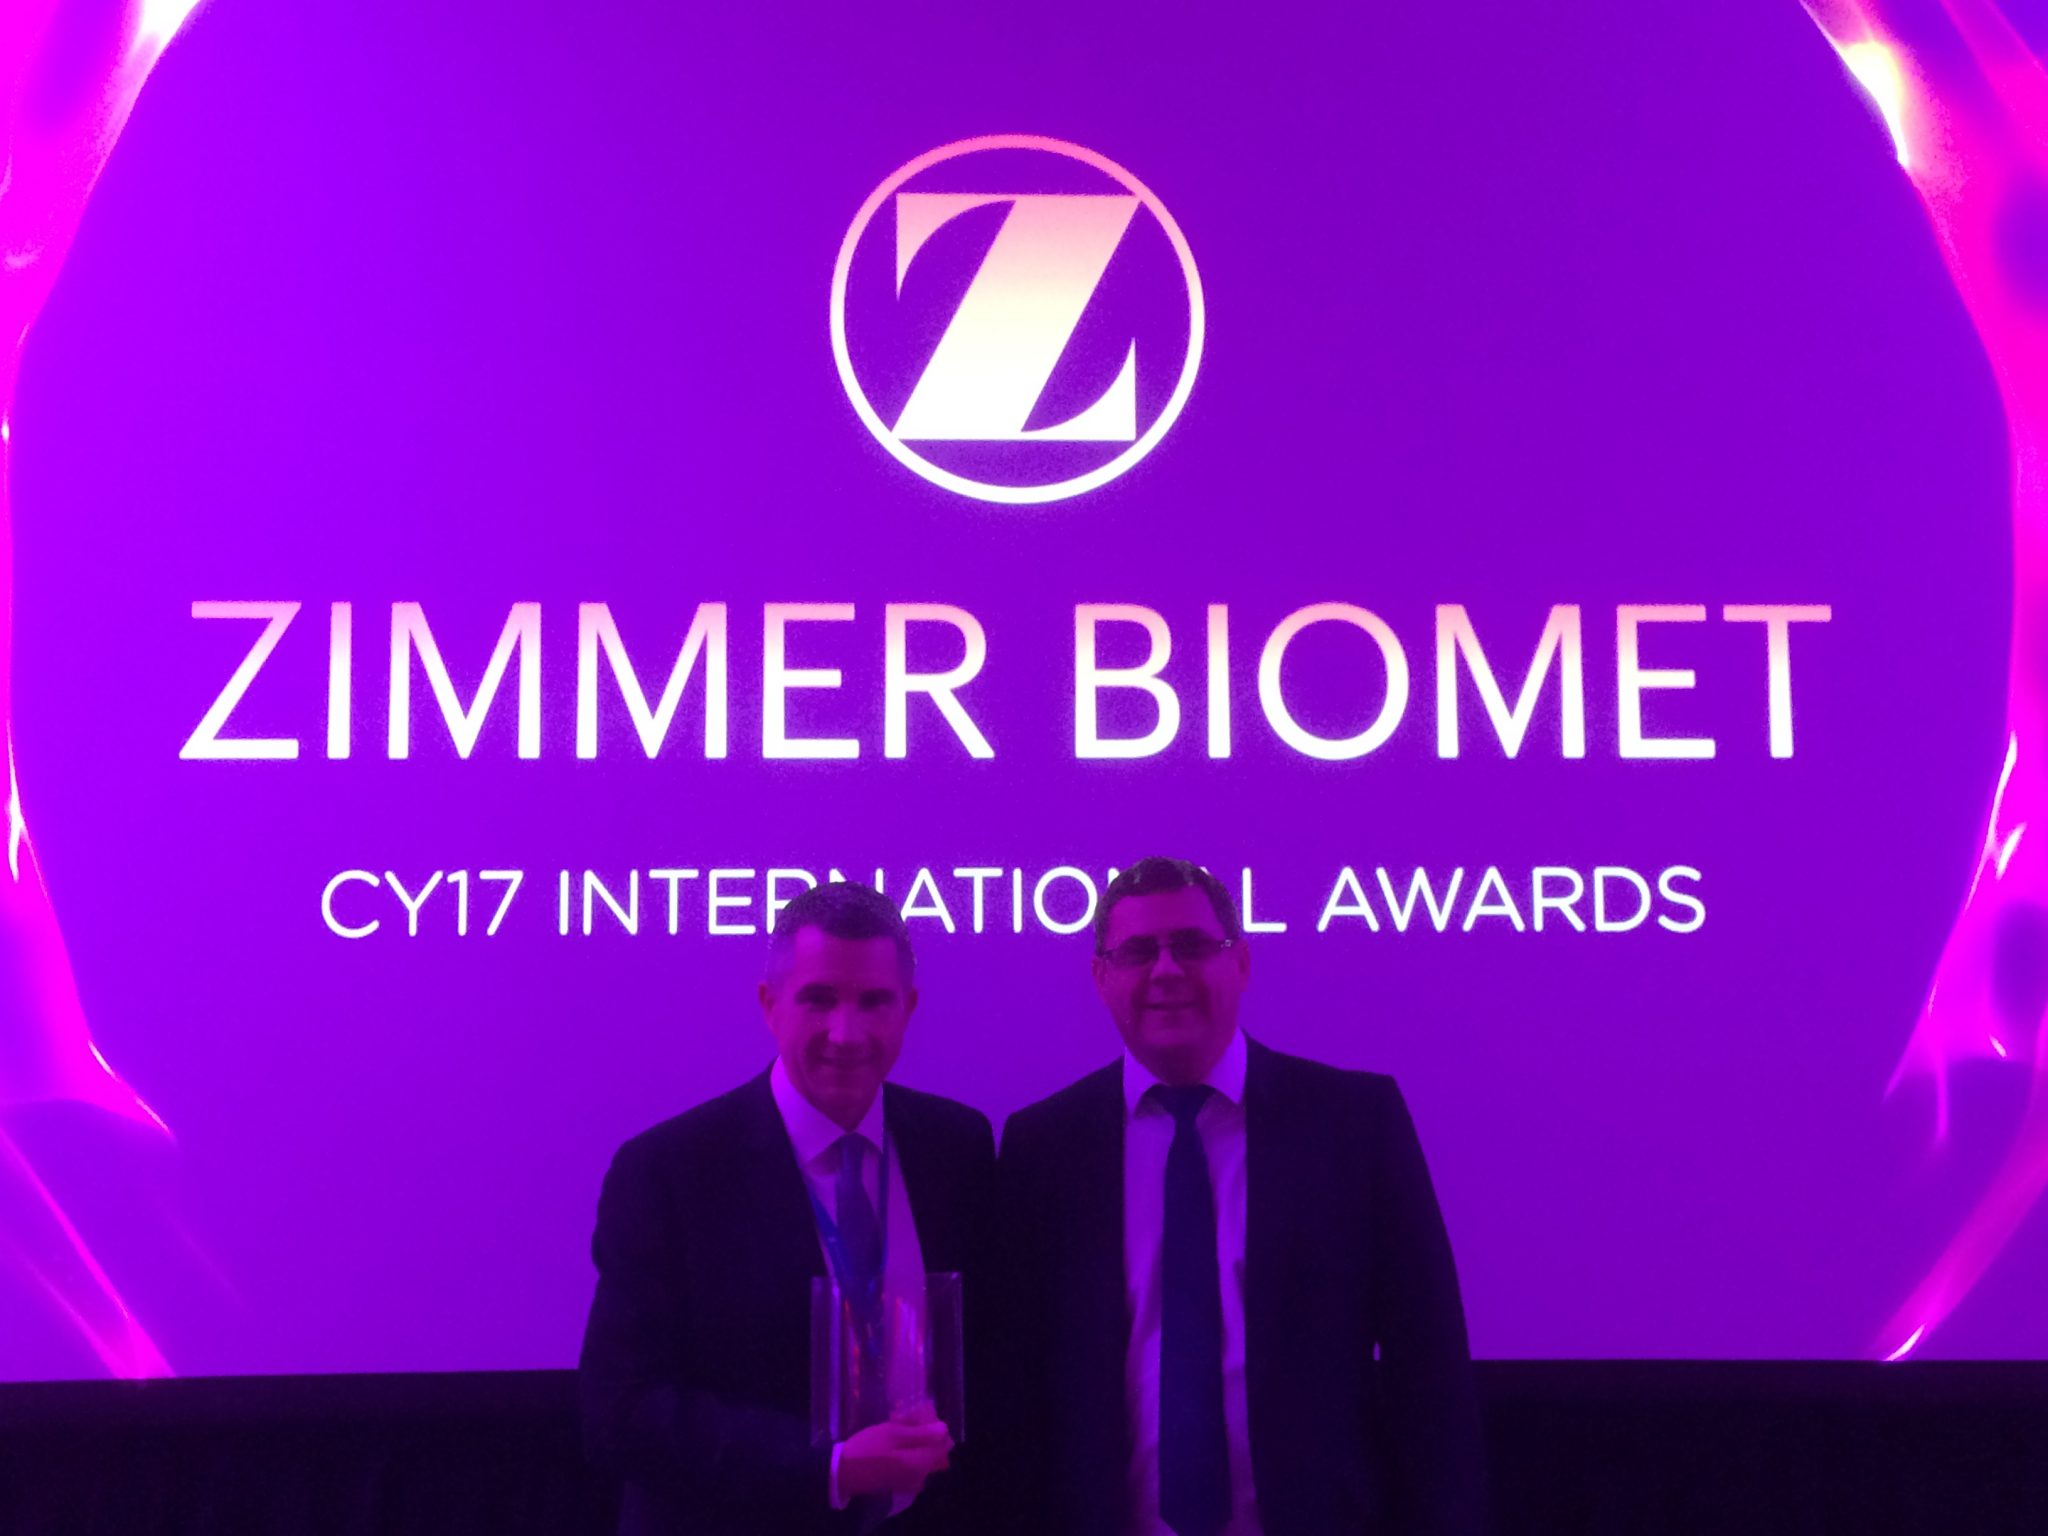 Fannin Surgical become the highest growing Zimmer Biomet Distribution Sales Team in Europe image cover